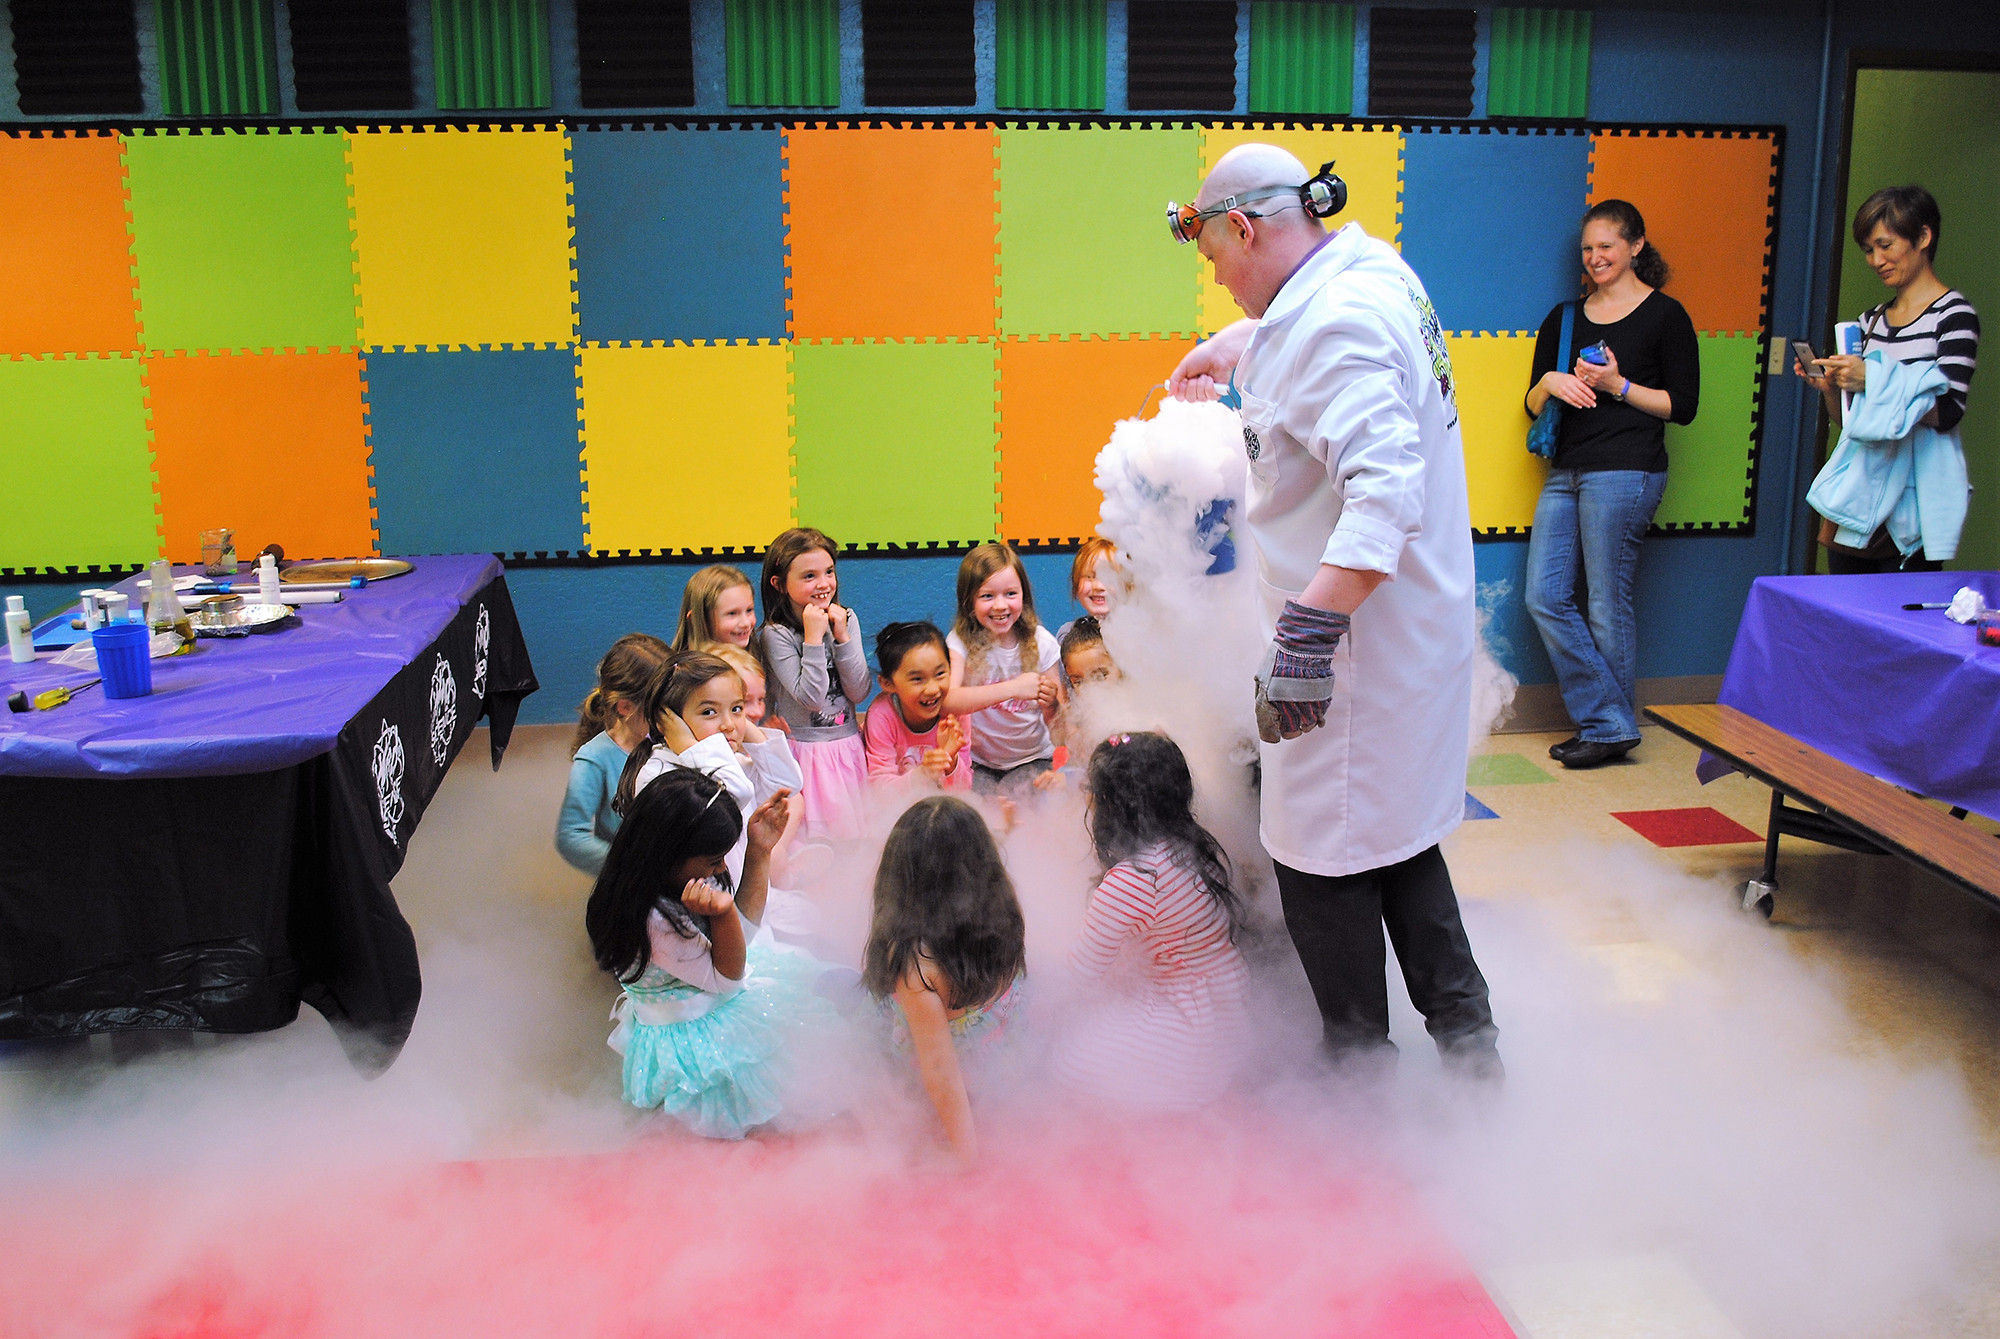 Kids Birthday Party Location Ideas  Winter Kids Birthday Party Places